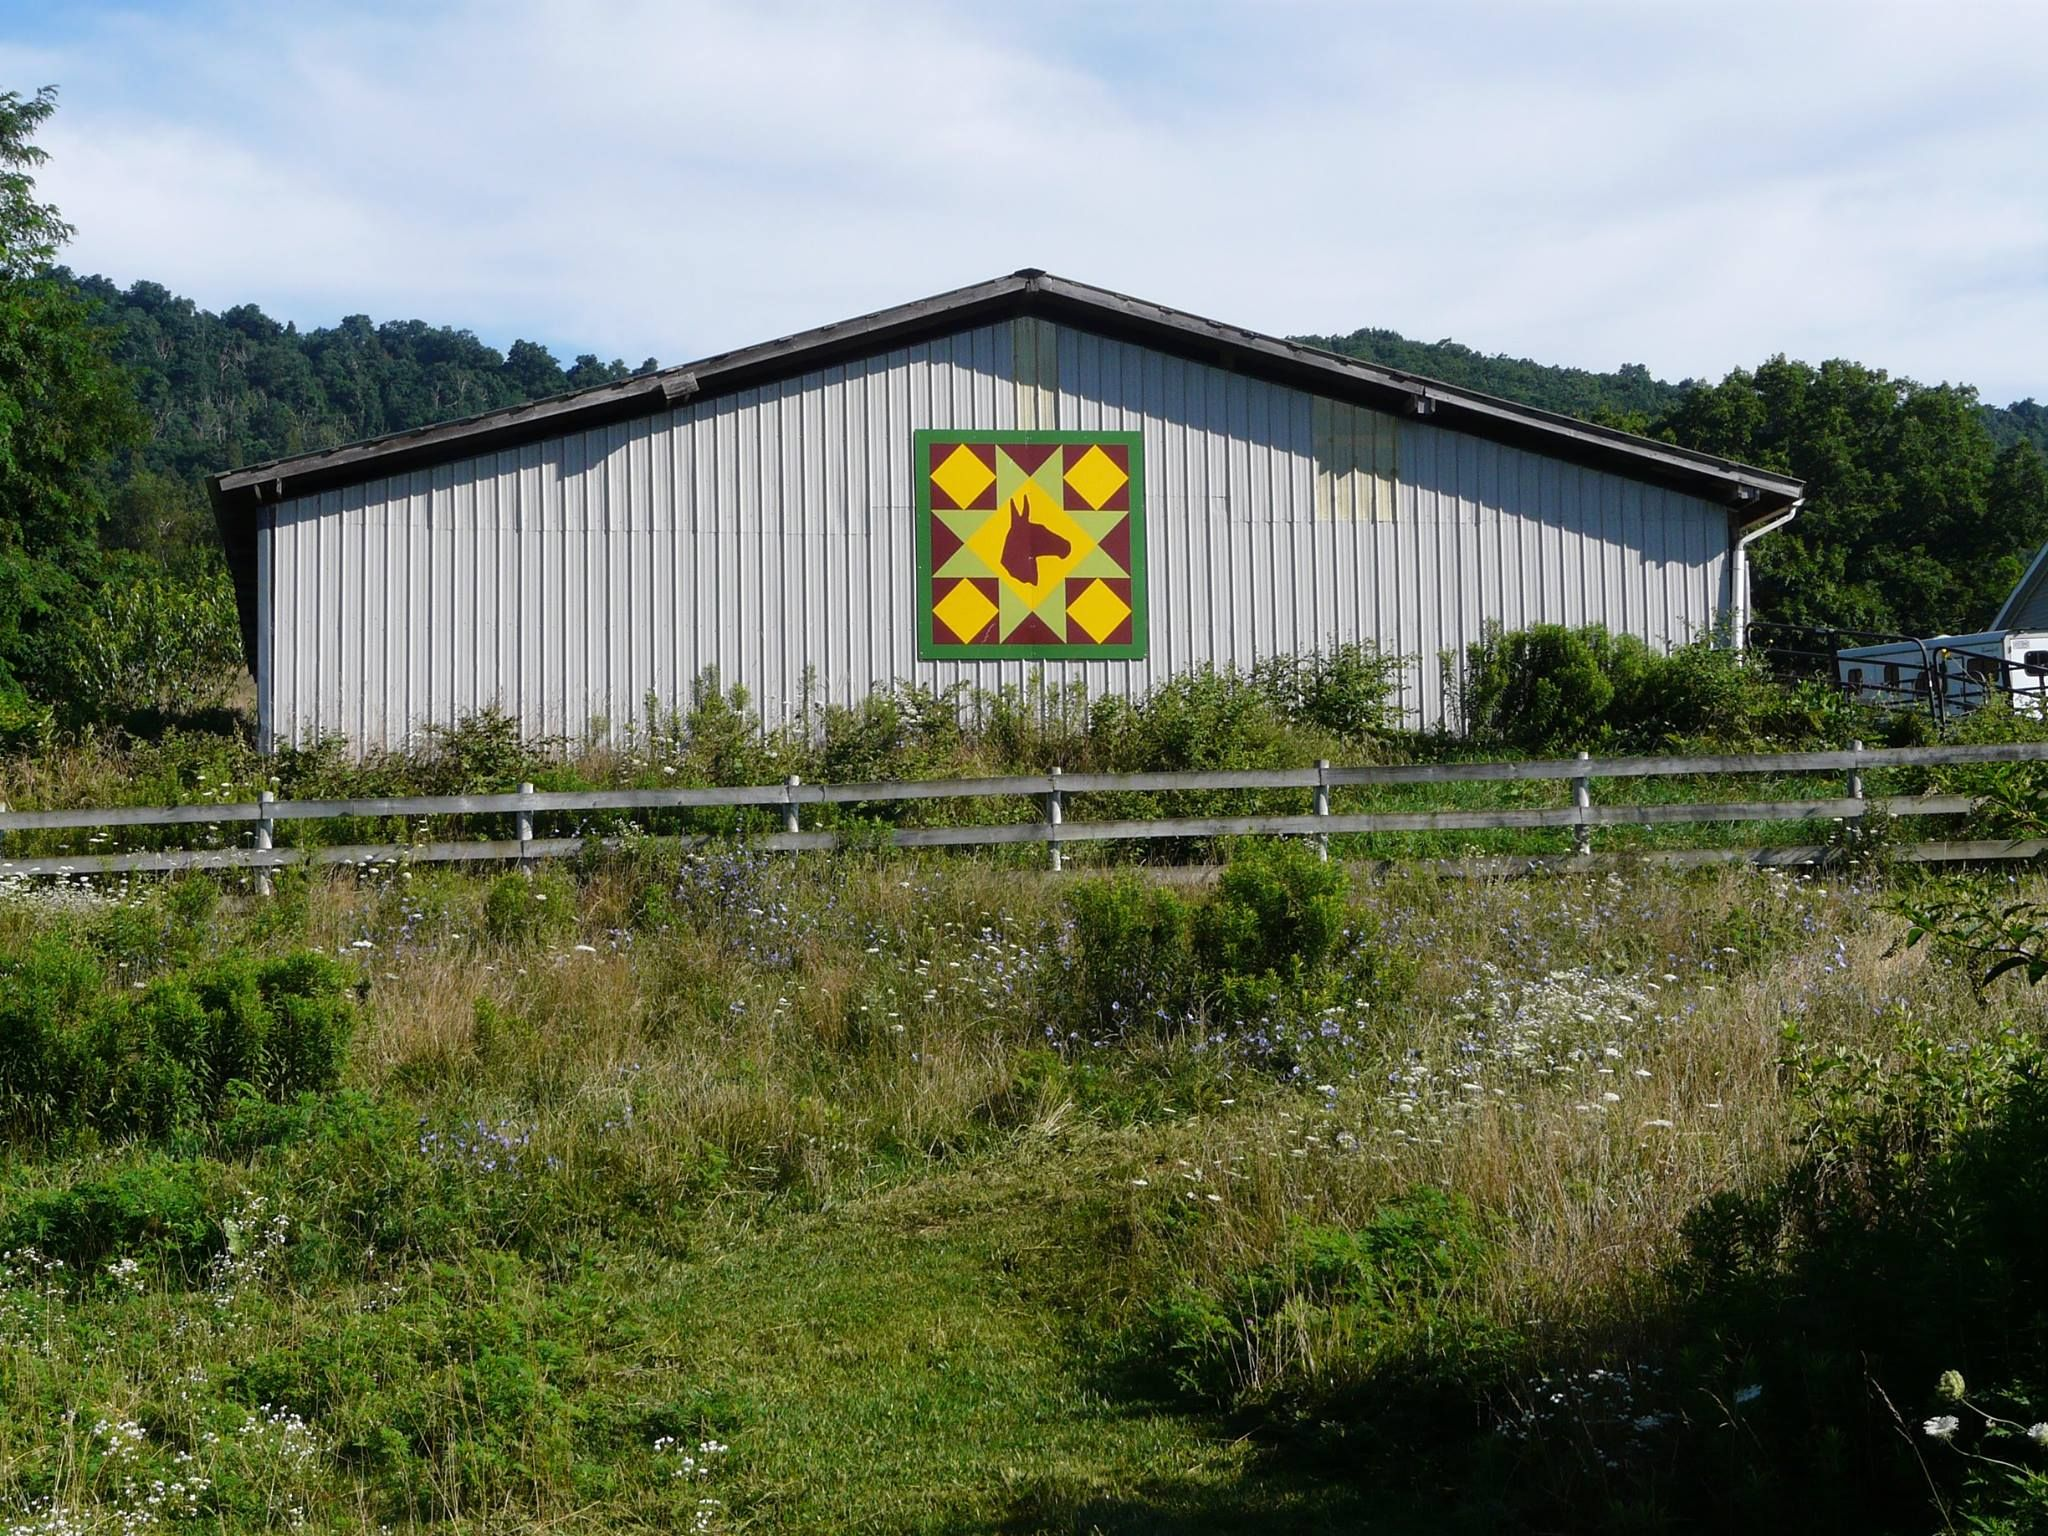 Craig County, Virginia Barn quilts, Barn art, Barn quilt